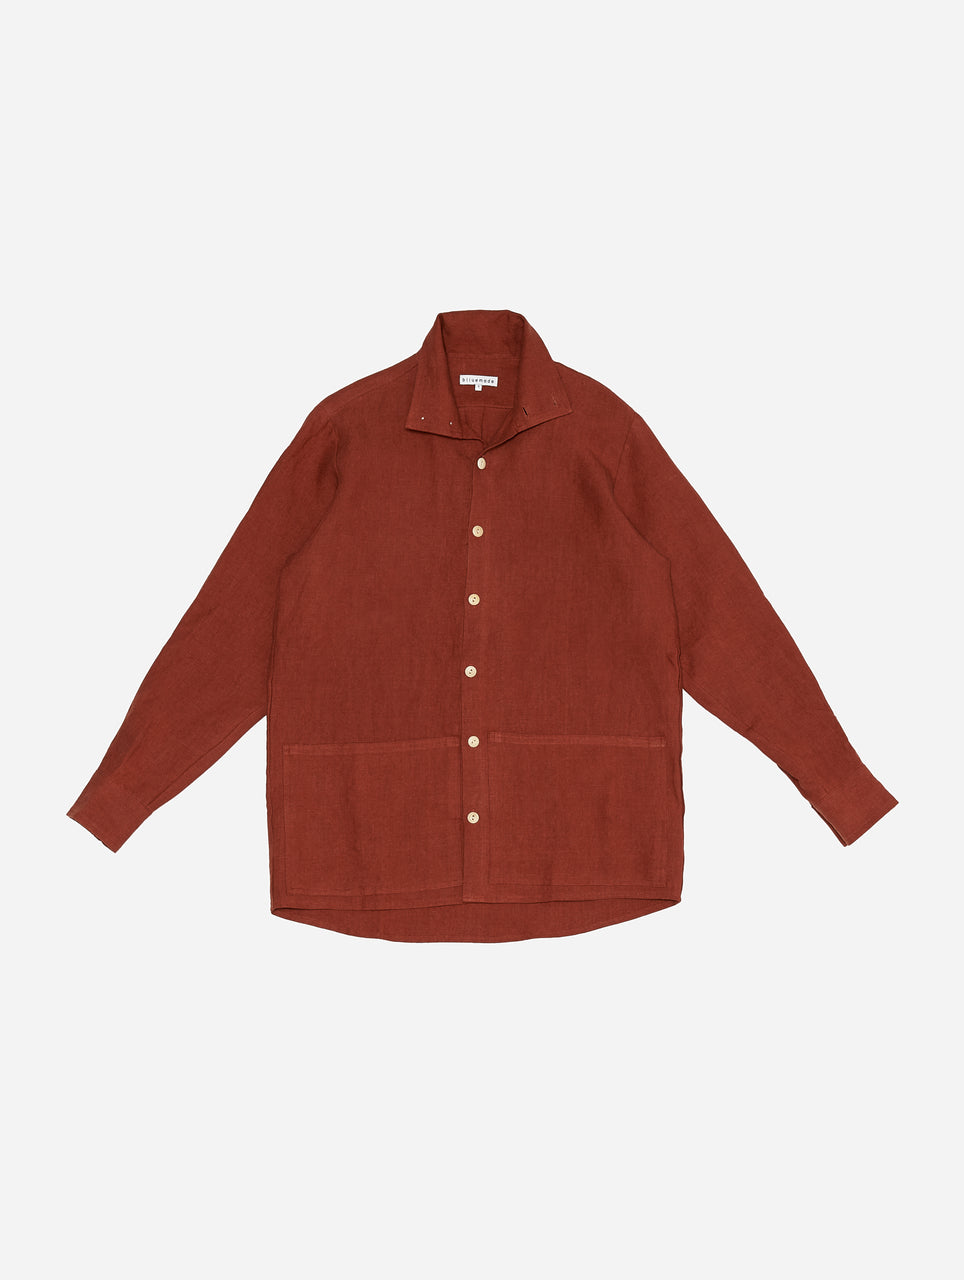 Jacket Shirt in Rust Linen